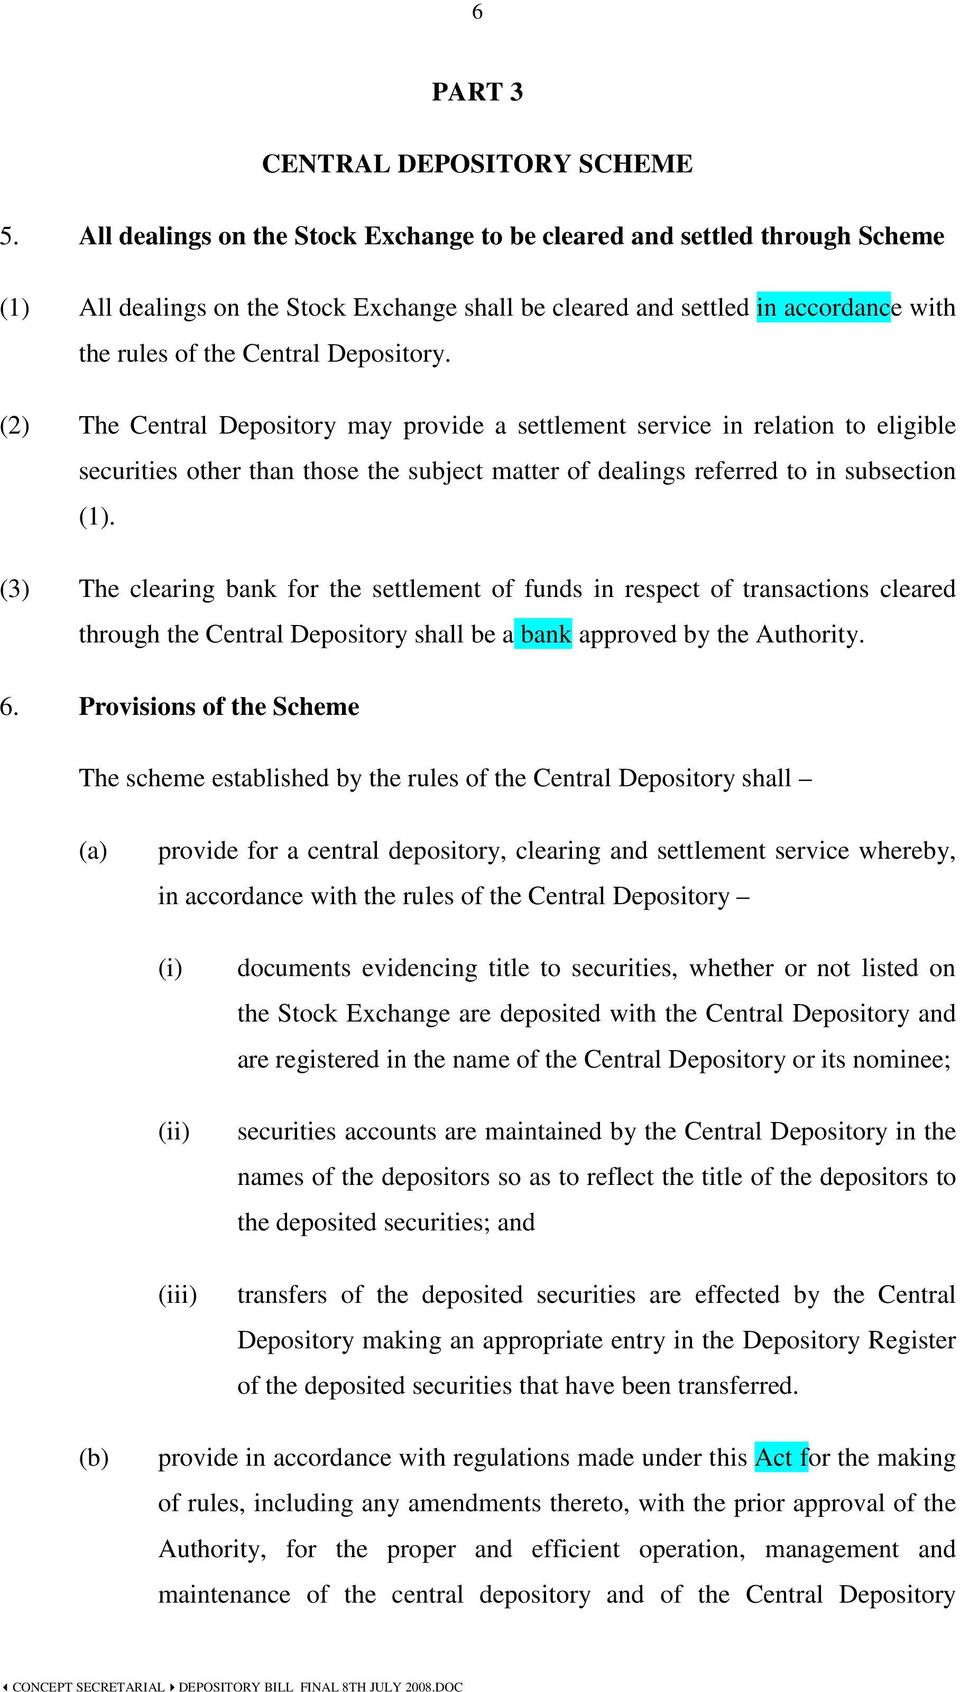 (2) The Central Depository may provide a settlement service in relation to eligible securities other than those the subject matter of dealings referred to in subsection (1).